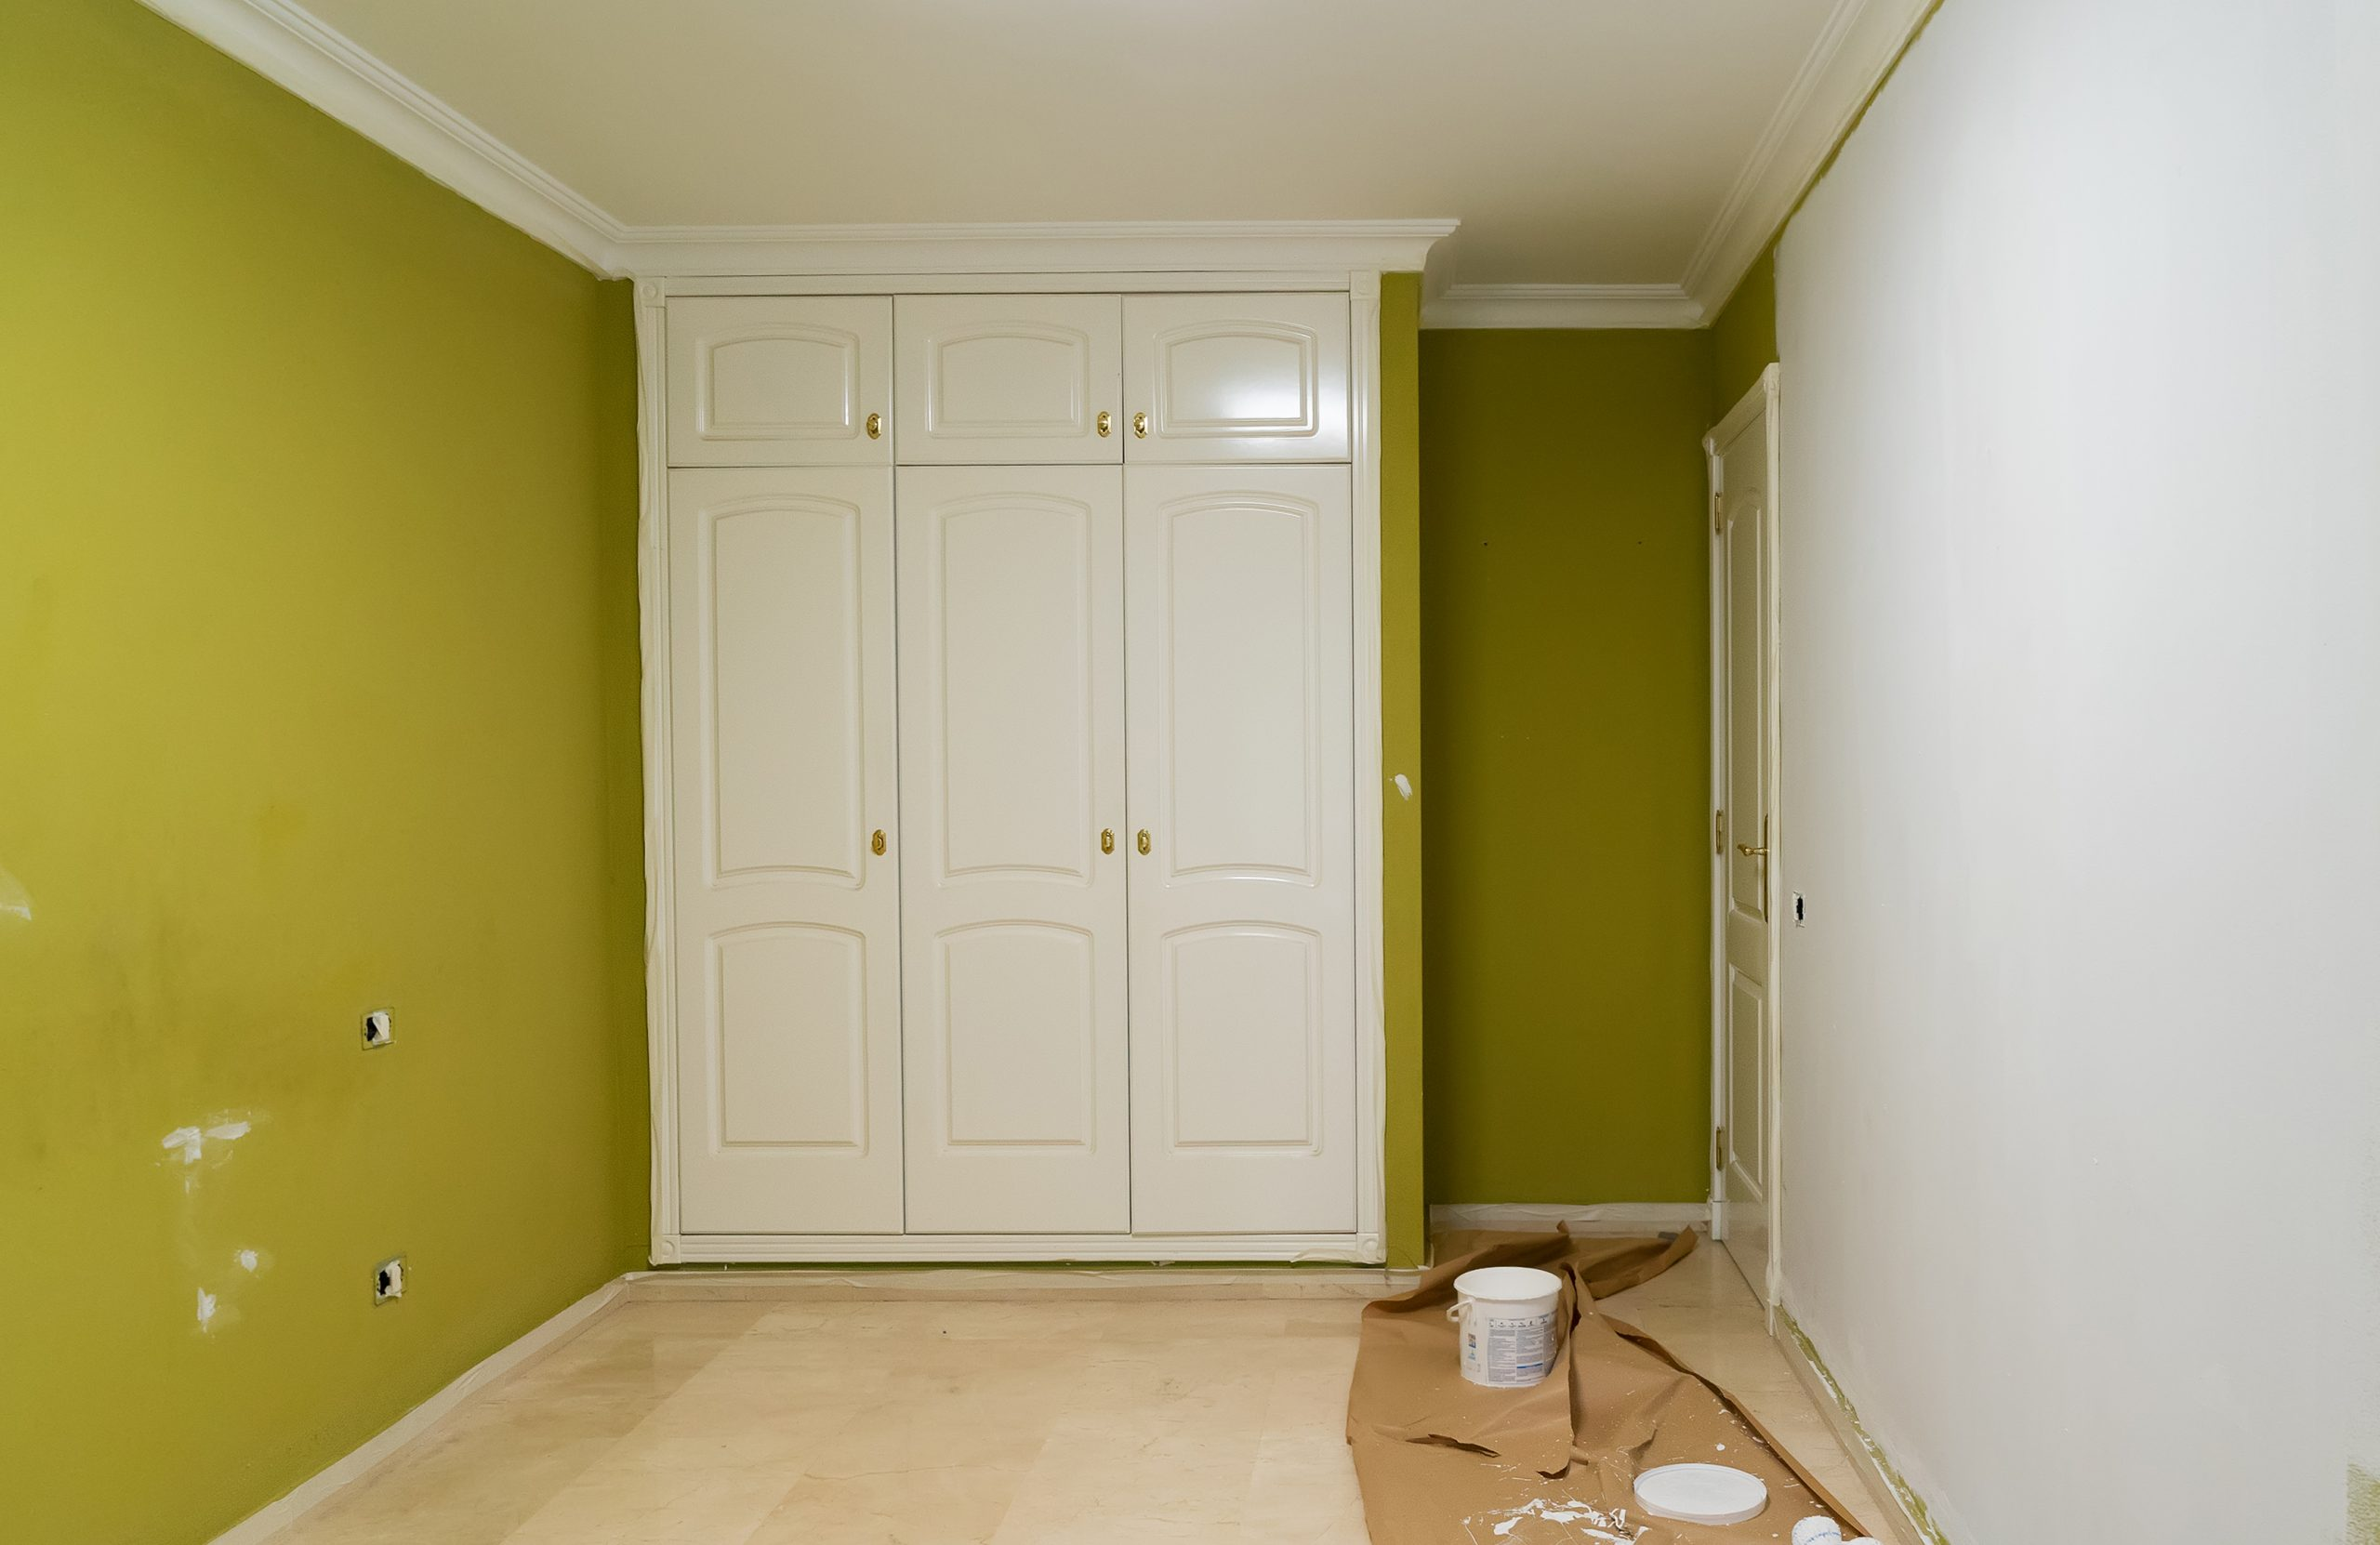 home renovation concept - old flat during restoration or refurbishment with newly painted white walls